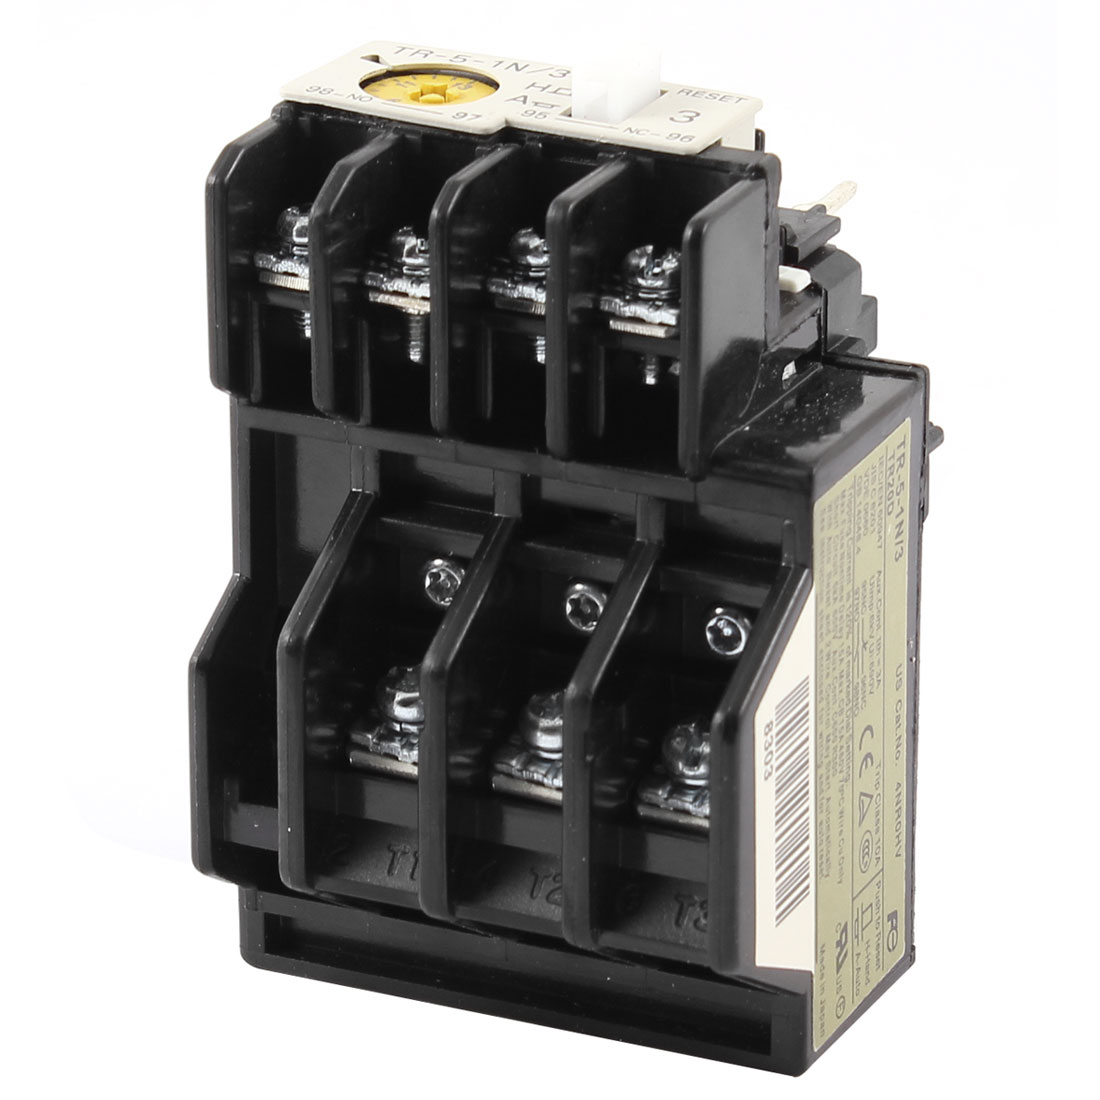 TR-5-1N/3 Ith 3A Uimp 6KV Ui 690V Adjustable 9A-13A 3 Pole Thermal Overload Relay 1NO 1NC